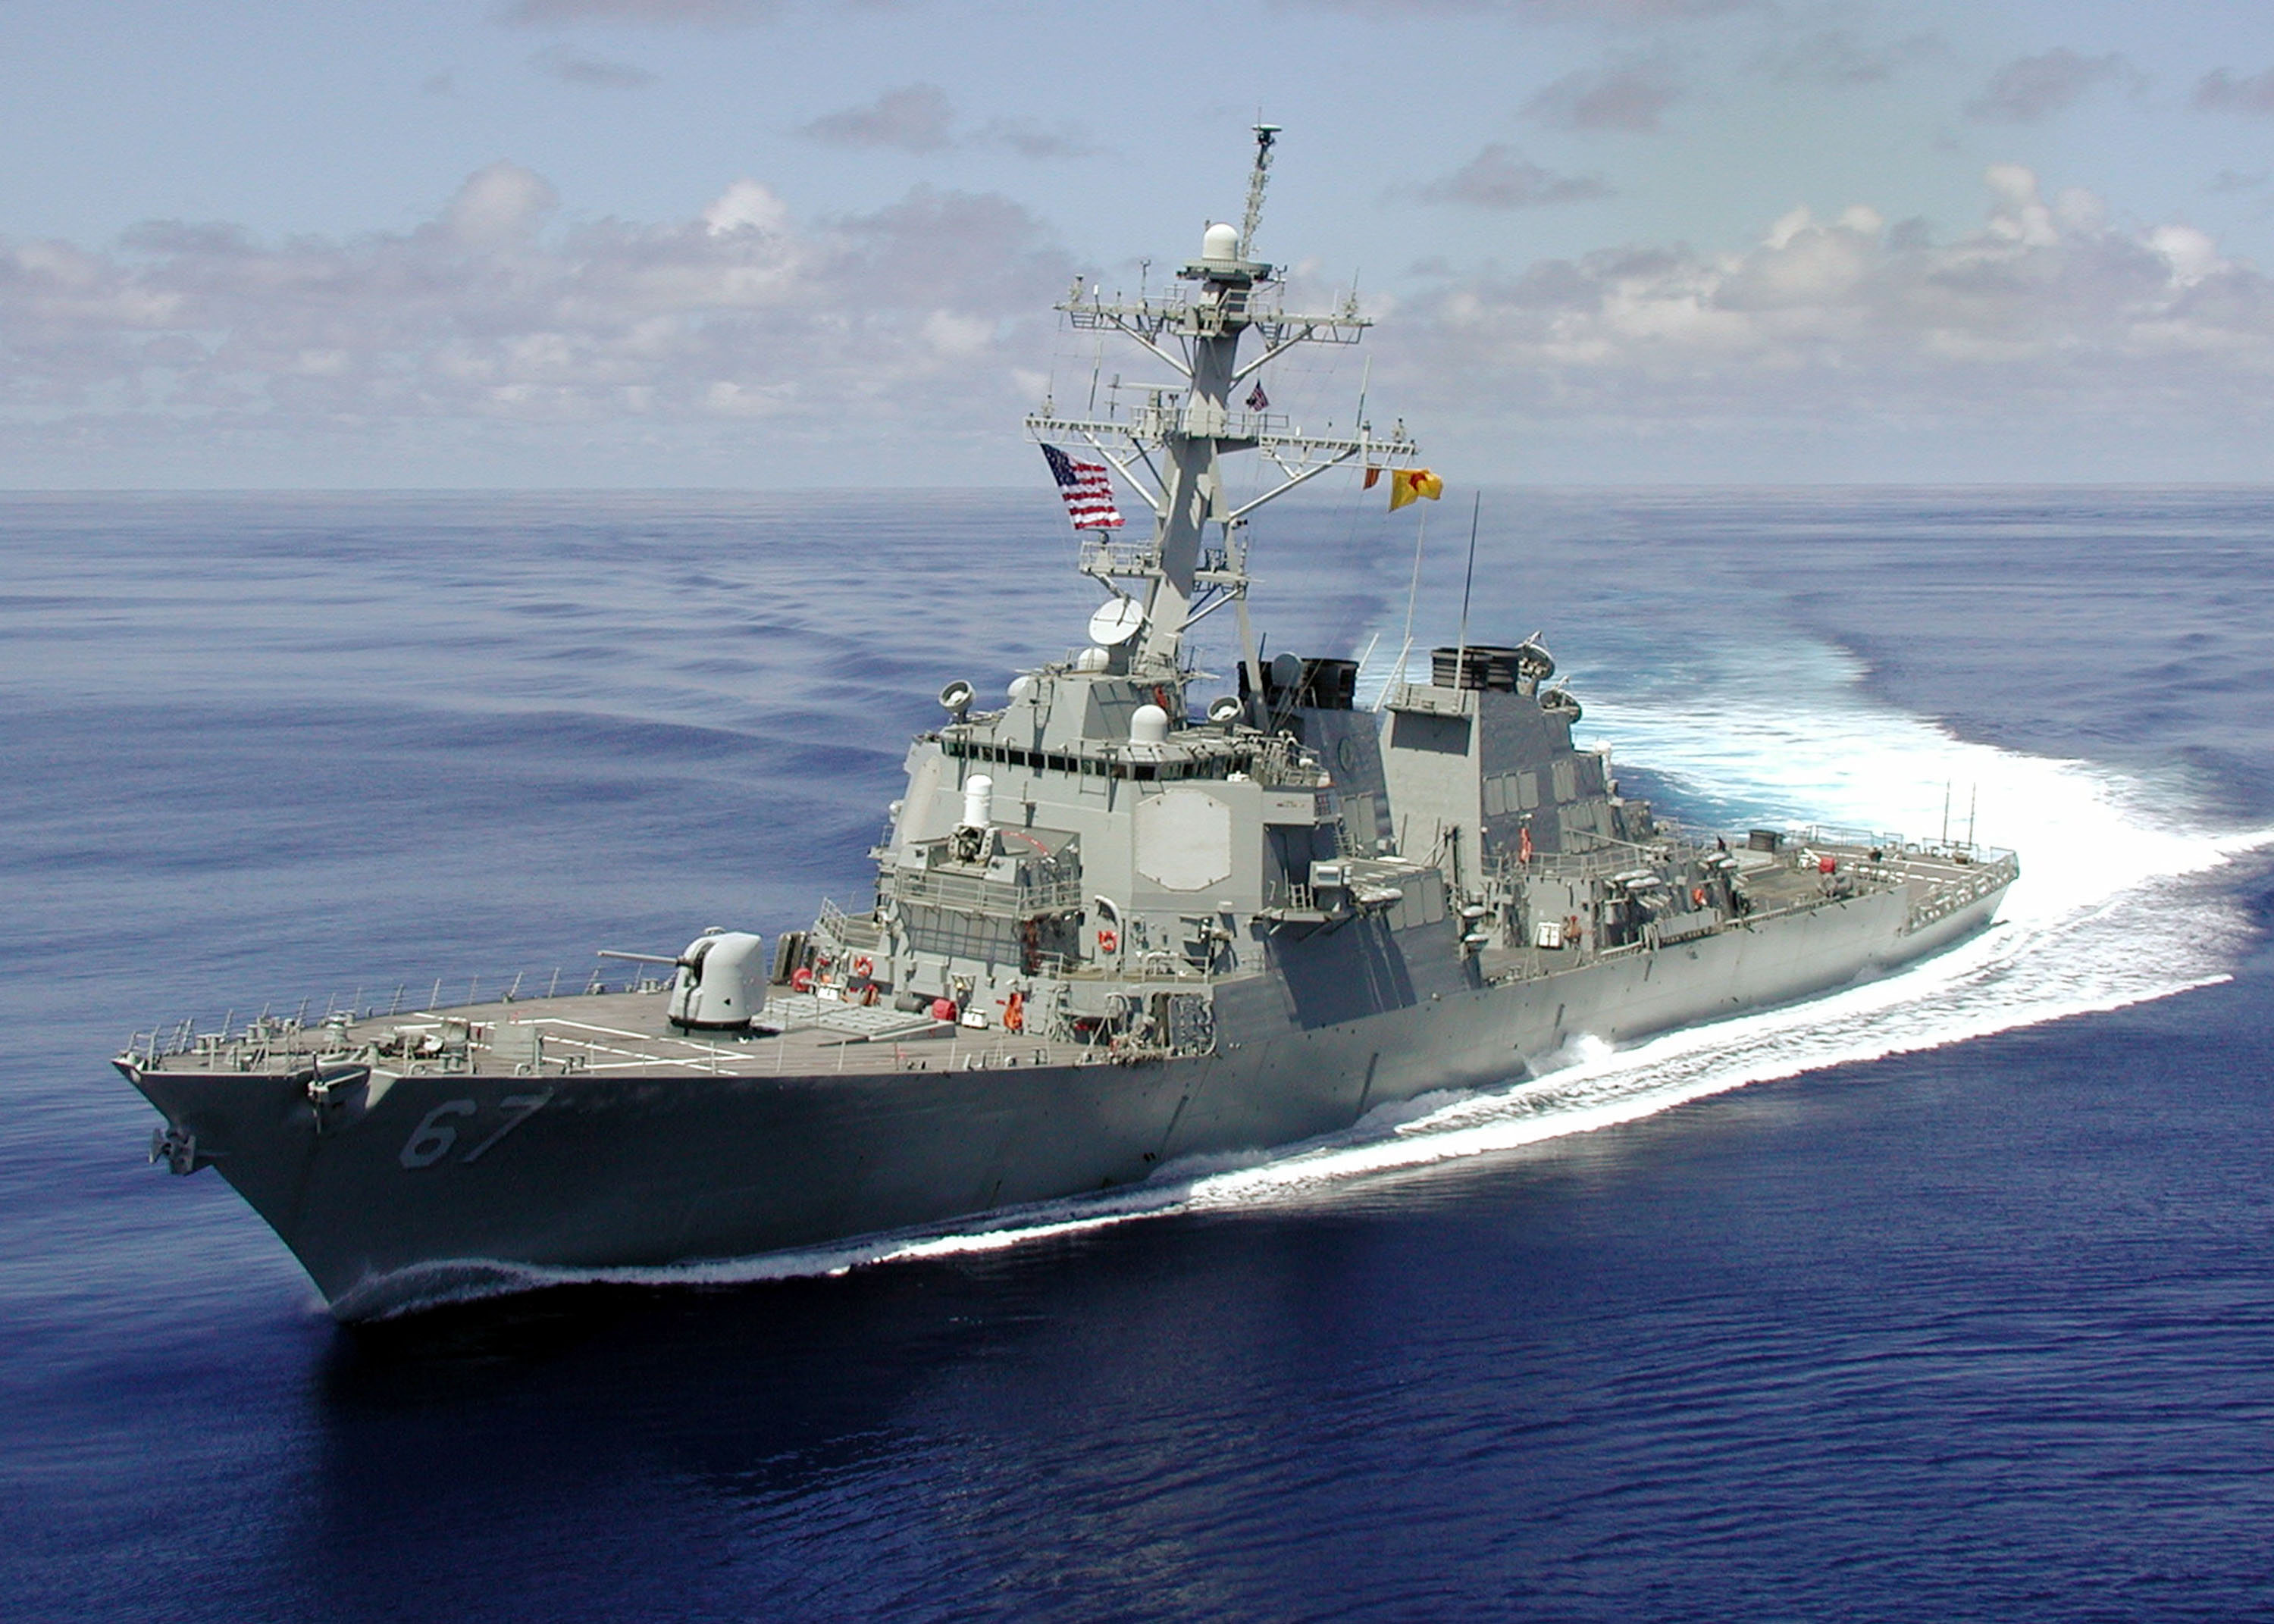 The Arleigh Burke class guided missile destroyer USS Cole is shown at sea approximately one month before being attacked by a terrorist-suicide mission which killed 17 U.S. sailors and injured approximately 36 others during a refueling operation October 12, 2000 in the port of Aden, Yemen. Al-Qaeda's chief of Persian Gulf operations, Abd al-Rahim al-Nashiri, also known as